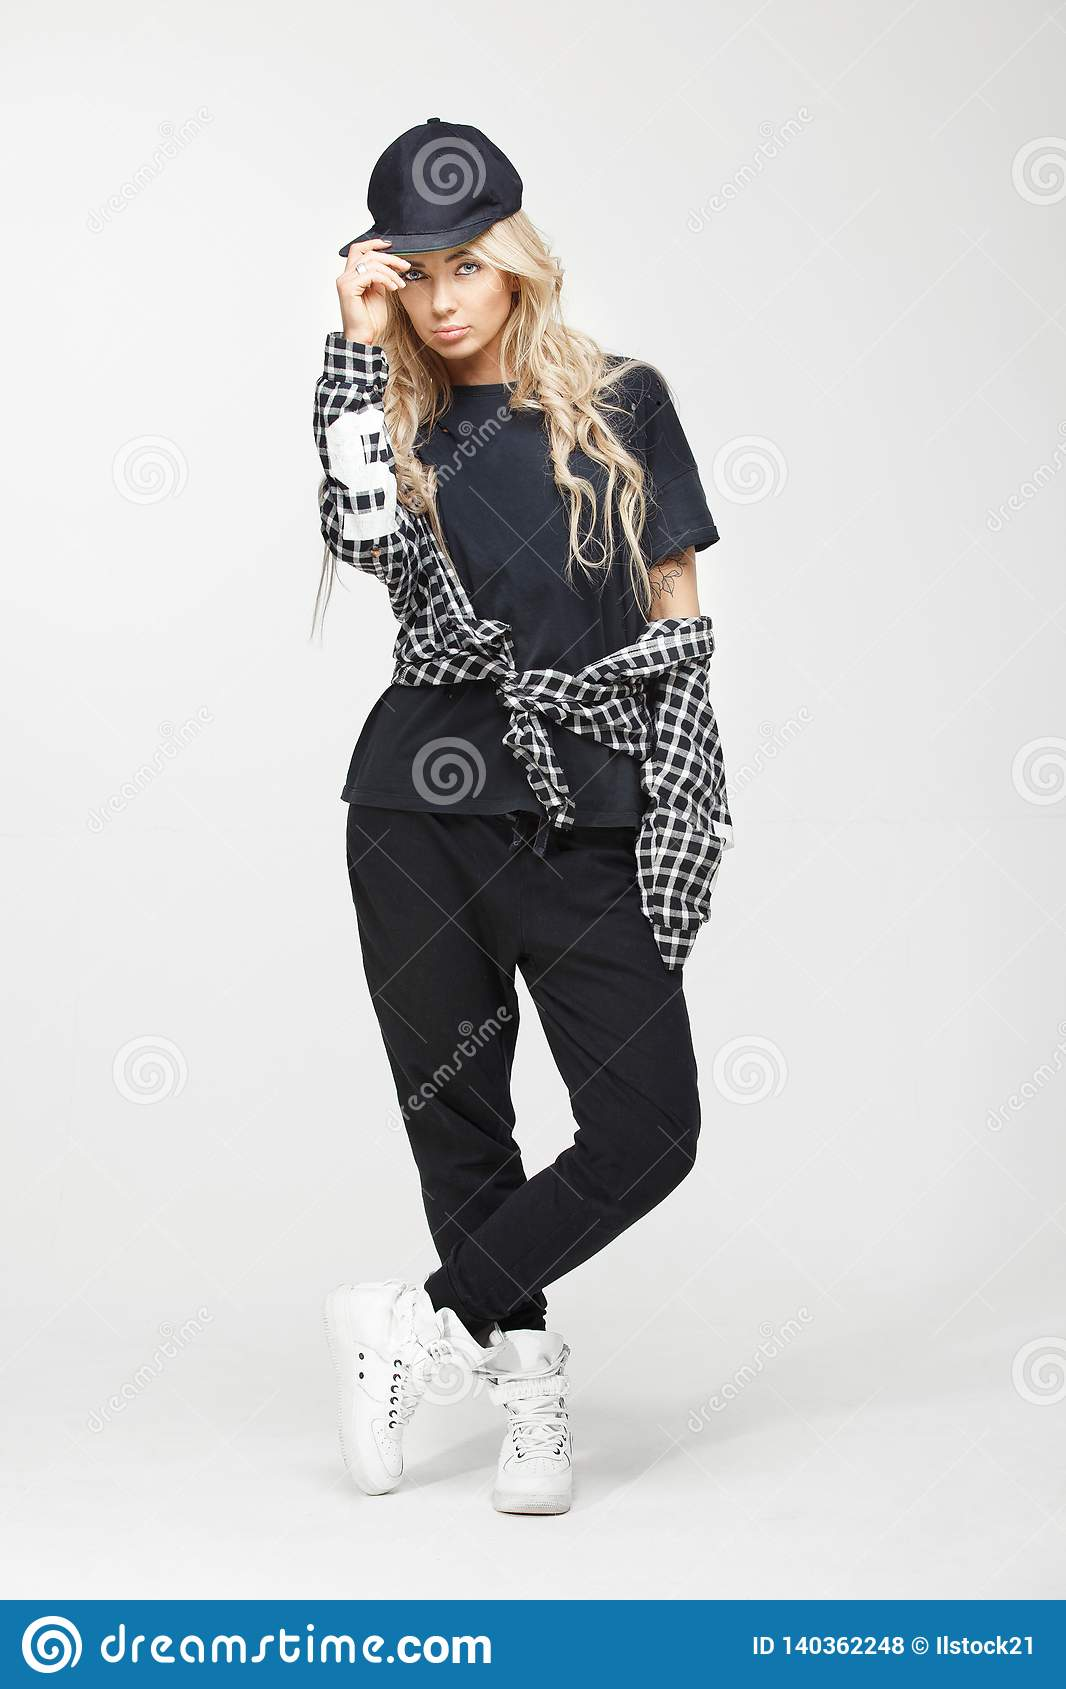 Studio Growth Portrait Of A Stylish Swag Girl In Black And